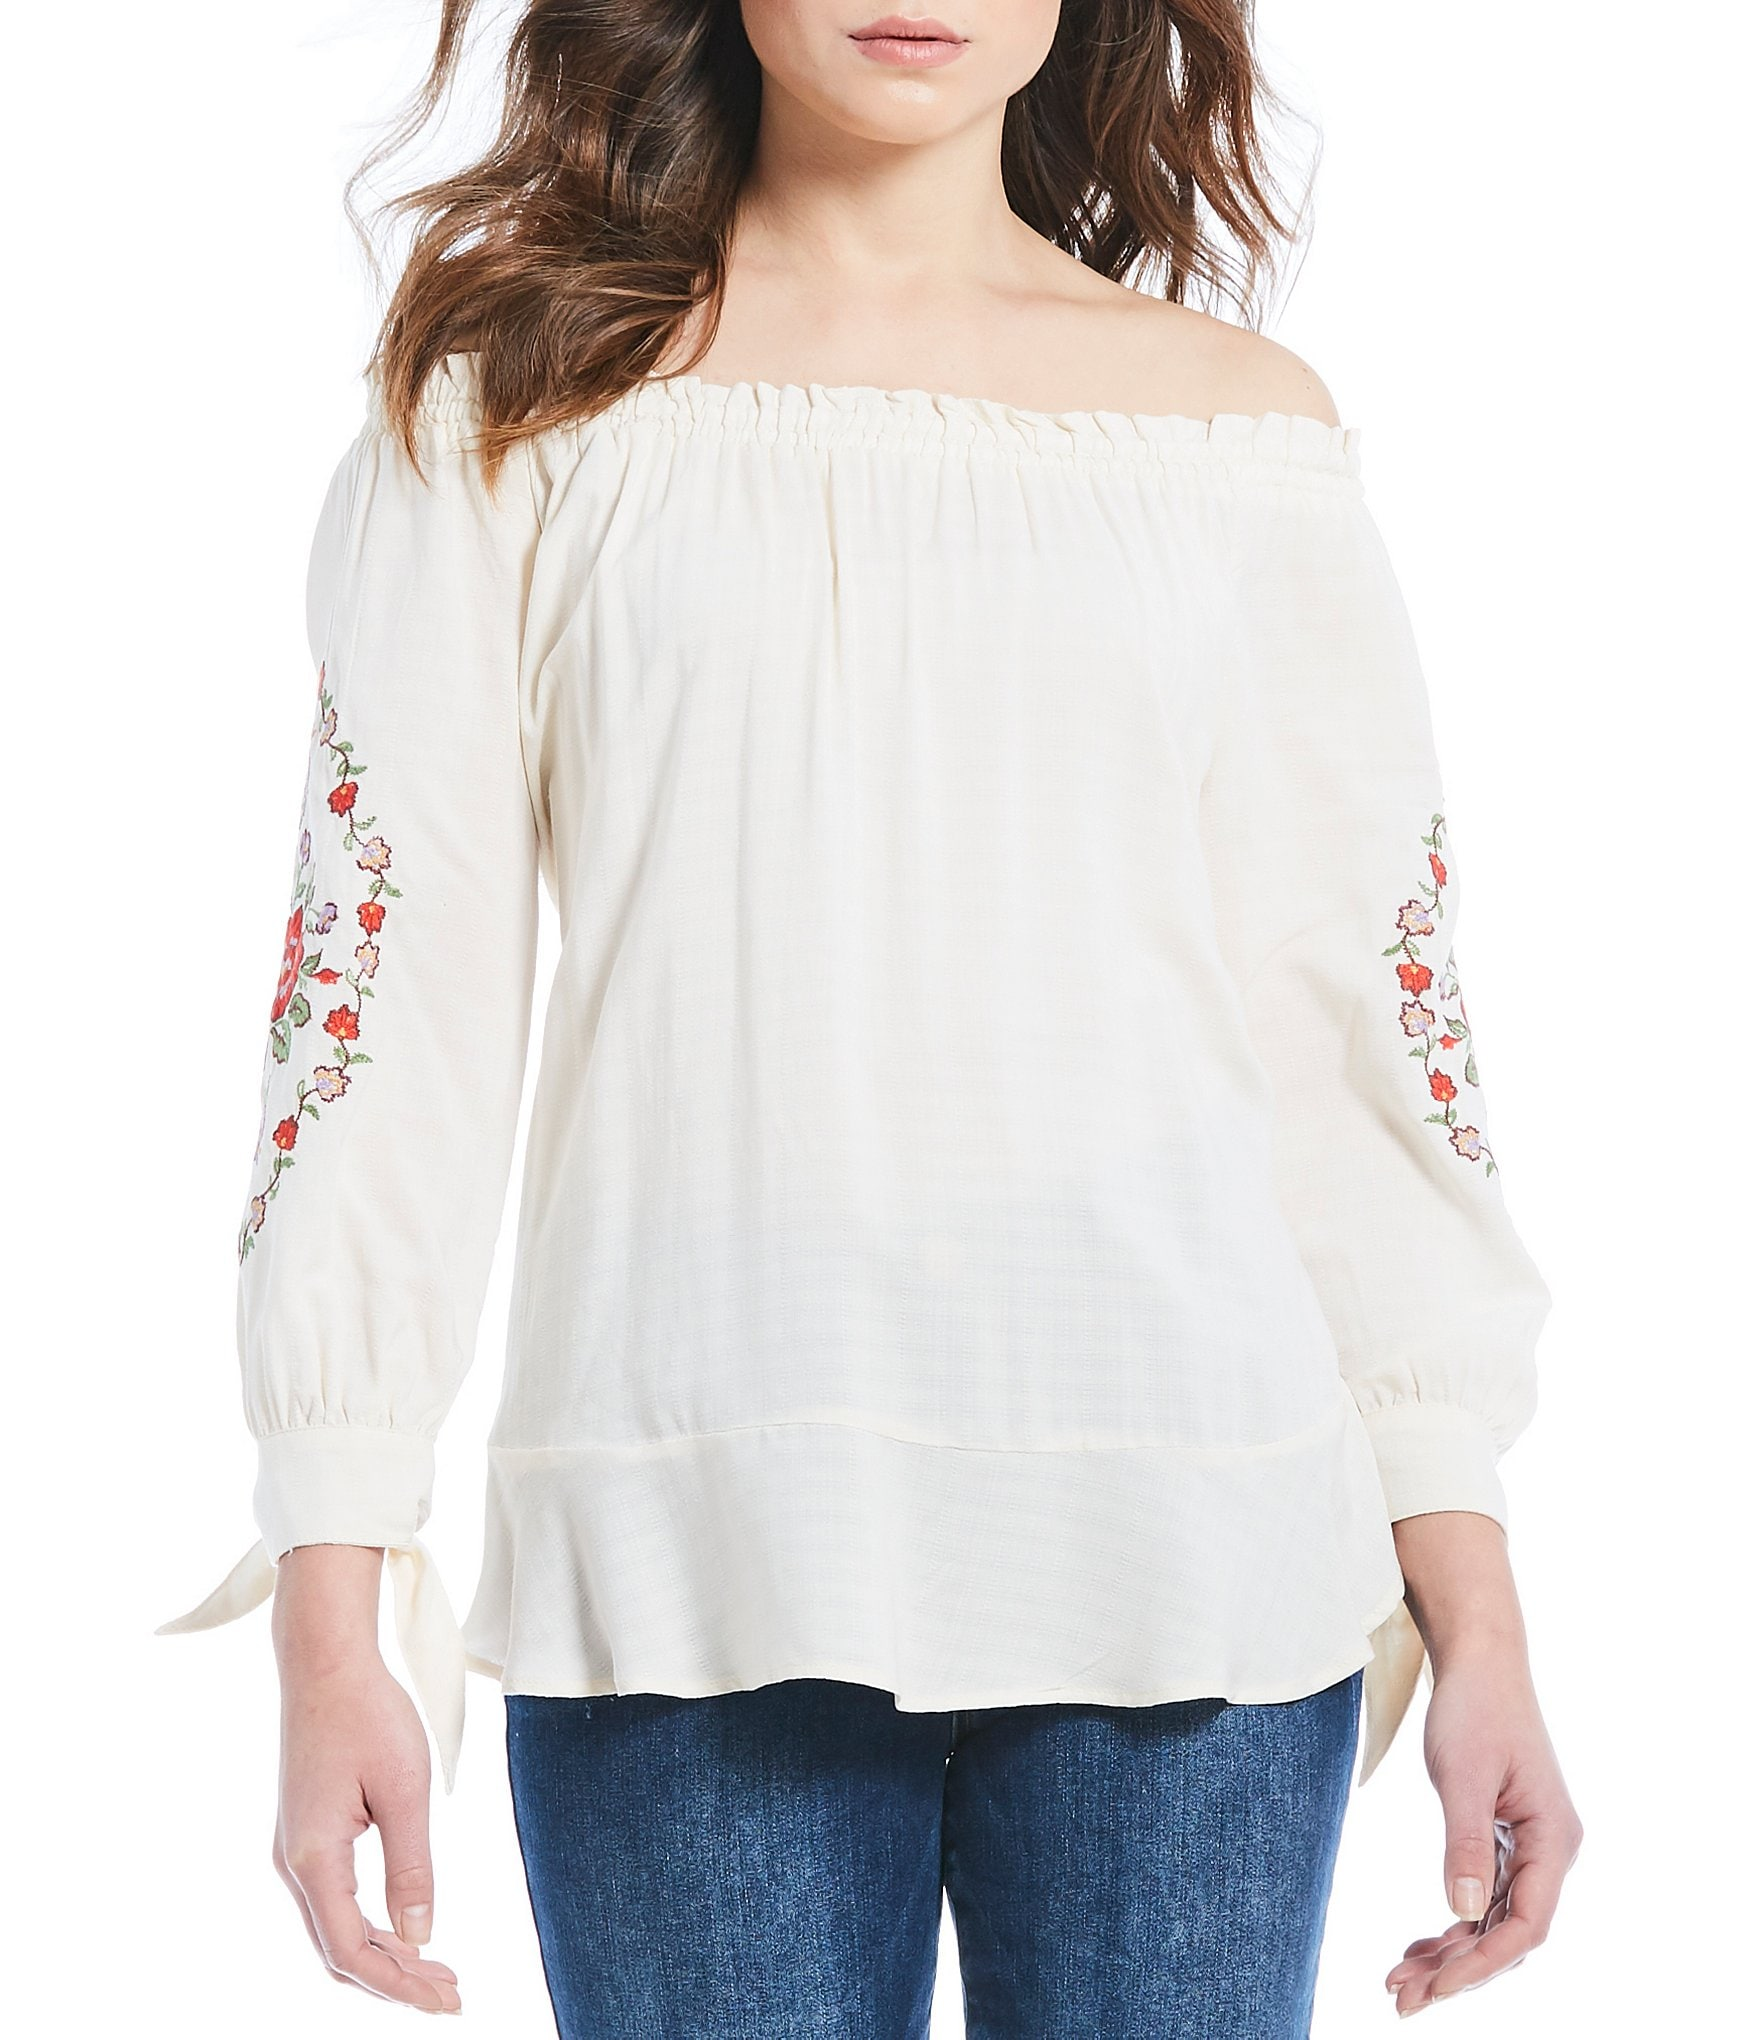 71dbef588631 off the shoulder  Women s Casual   Dressy Tops   Blouses